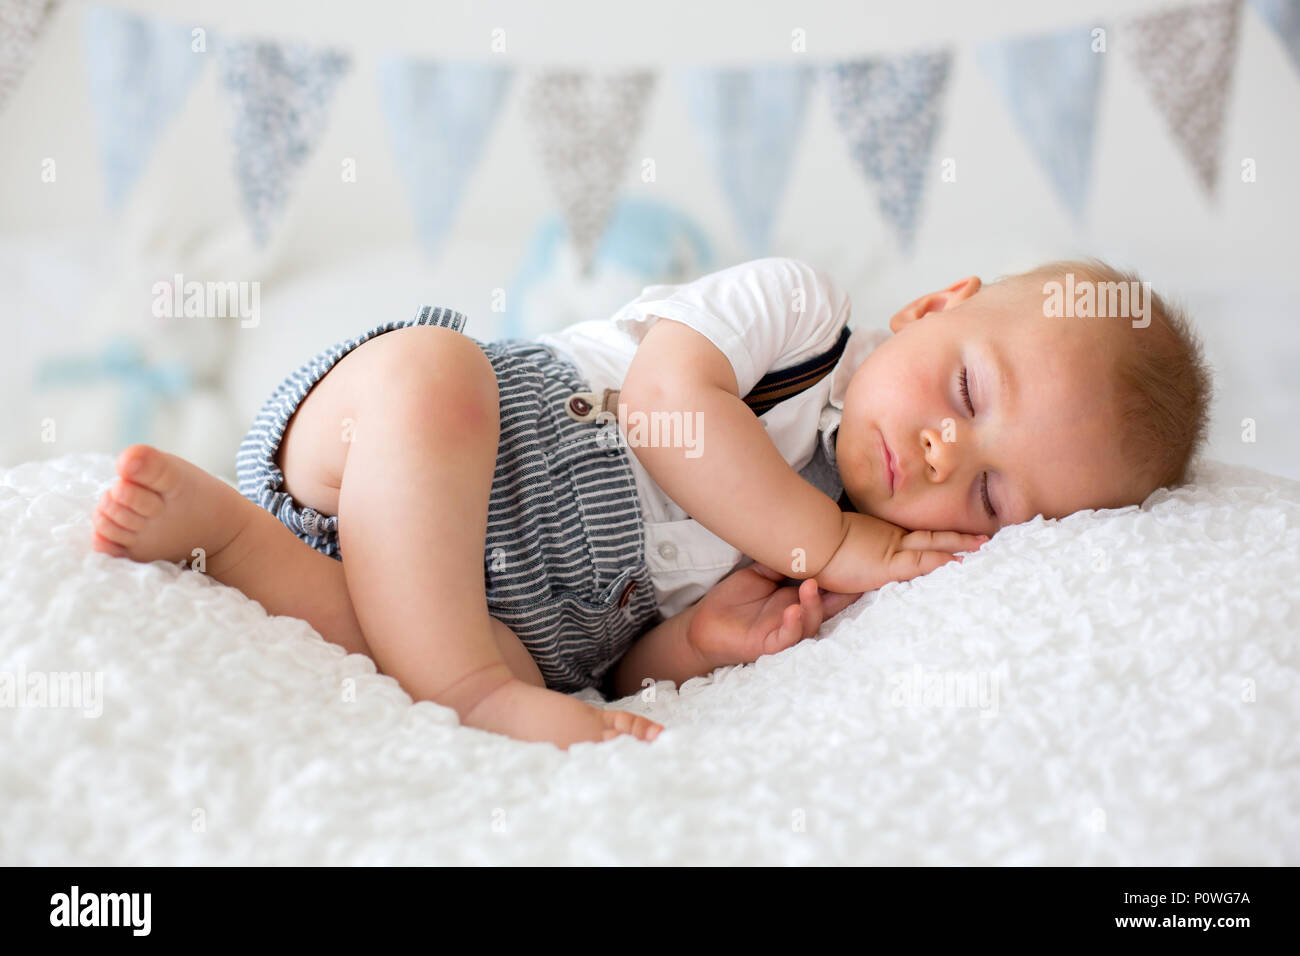 Sweet Little Child Baby Boy Sleeping In A Sunny Bedroom During The Day Having A Rest Flag Banner Decoration On The Wall Behind Him Stock Photo Alamy